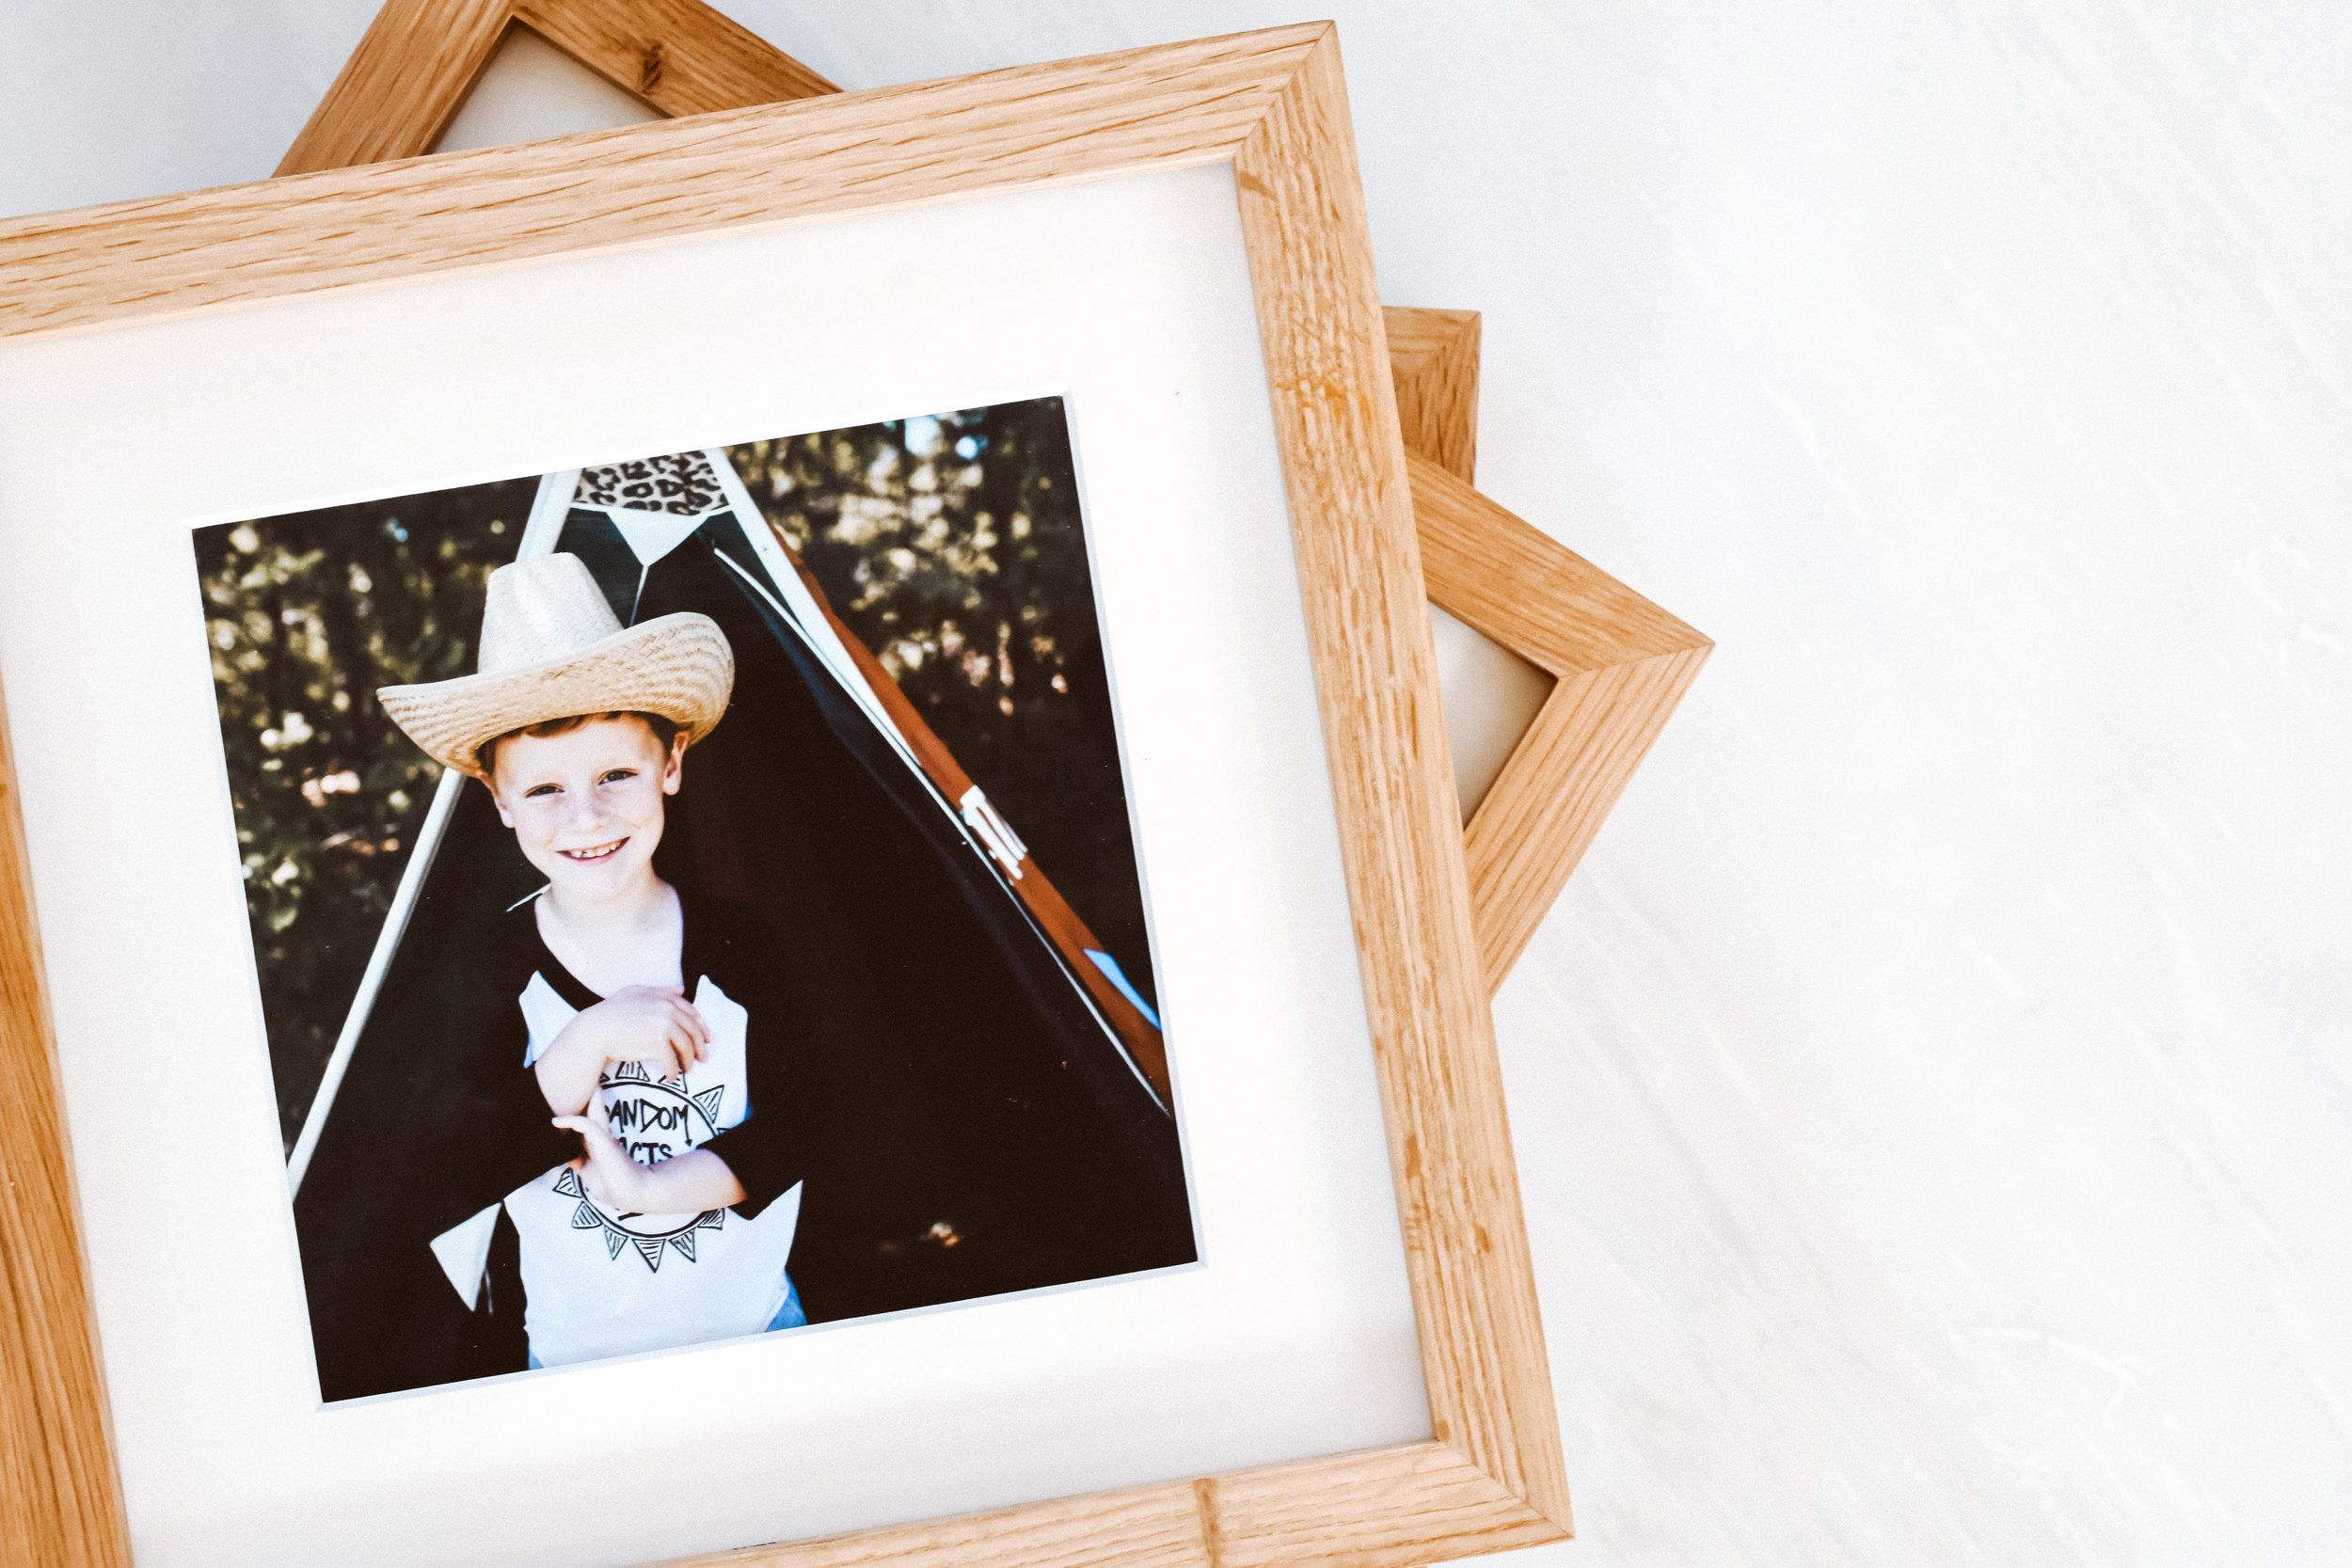 The best place to print photos